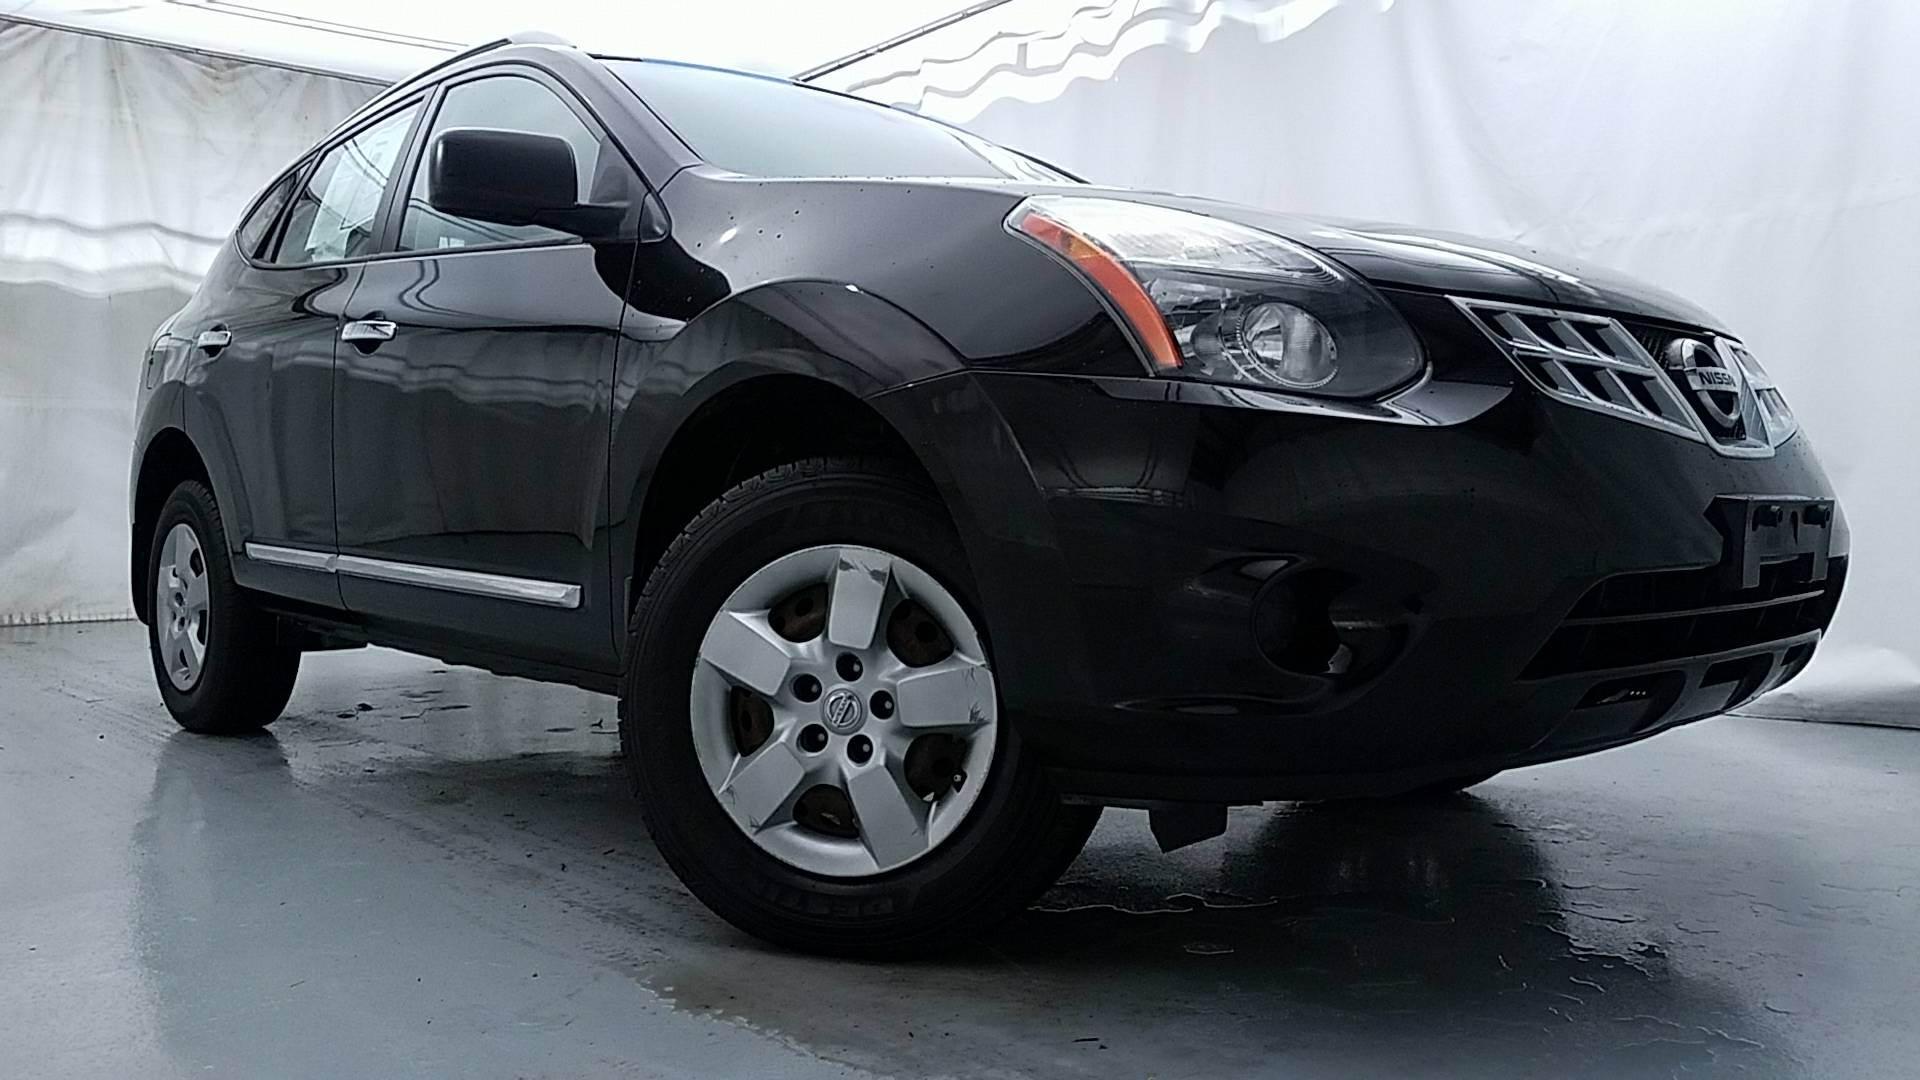 sale orleans vehicles vehicle to new for used vehiclesearchresults photo in altima dp nissan la hammond